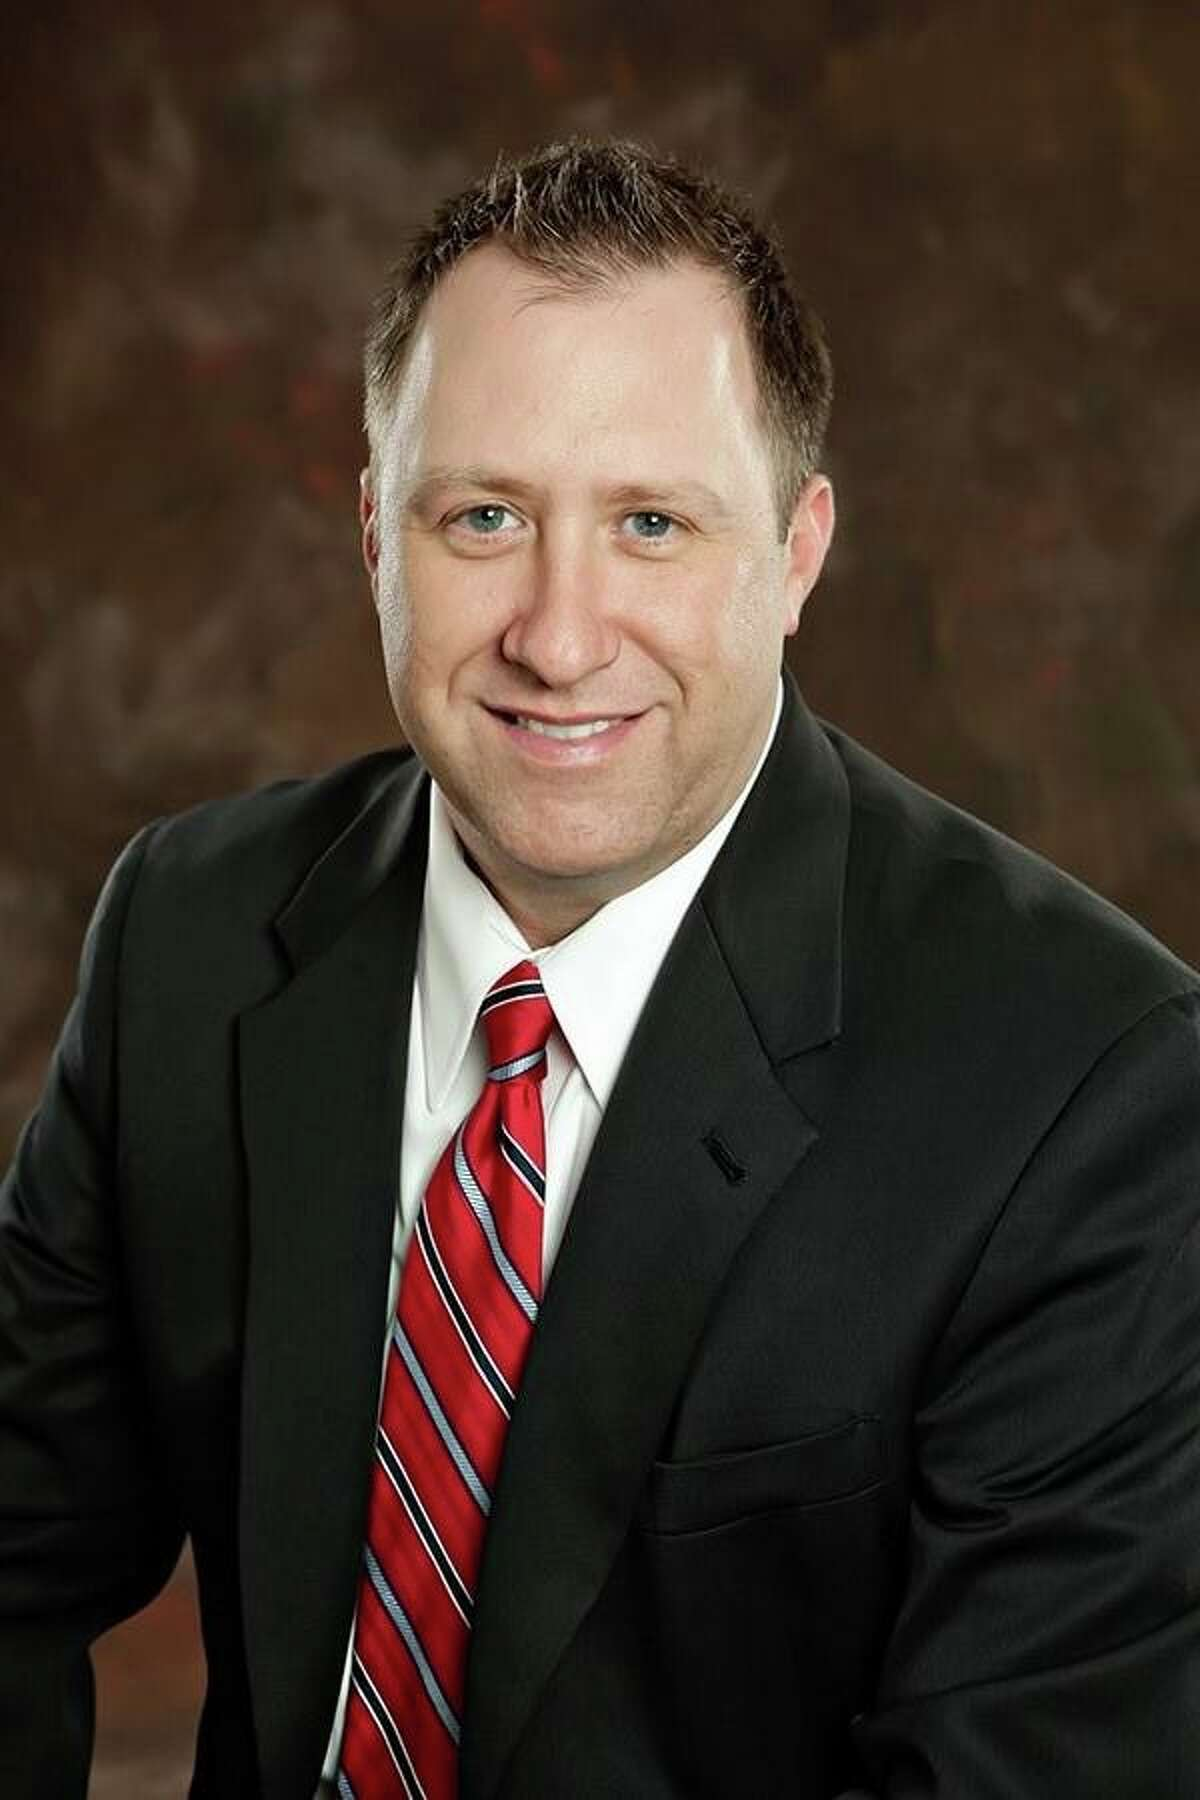 Pearland ISD Position 4 trustee Sean Murphy is seeking re-election. His opponent Jessica Garcia Shafer.